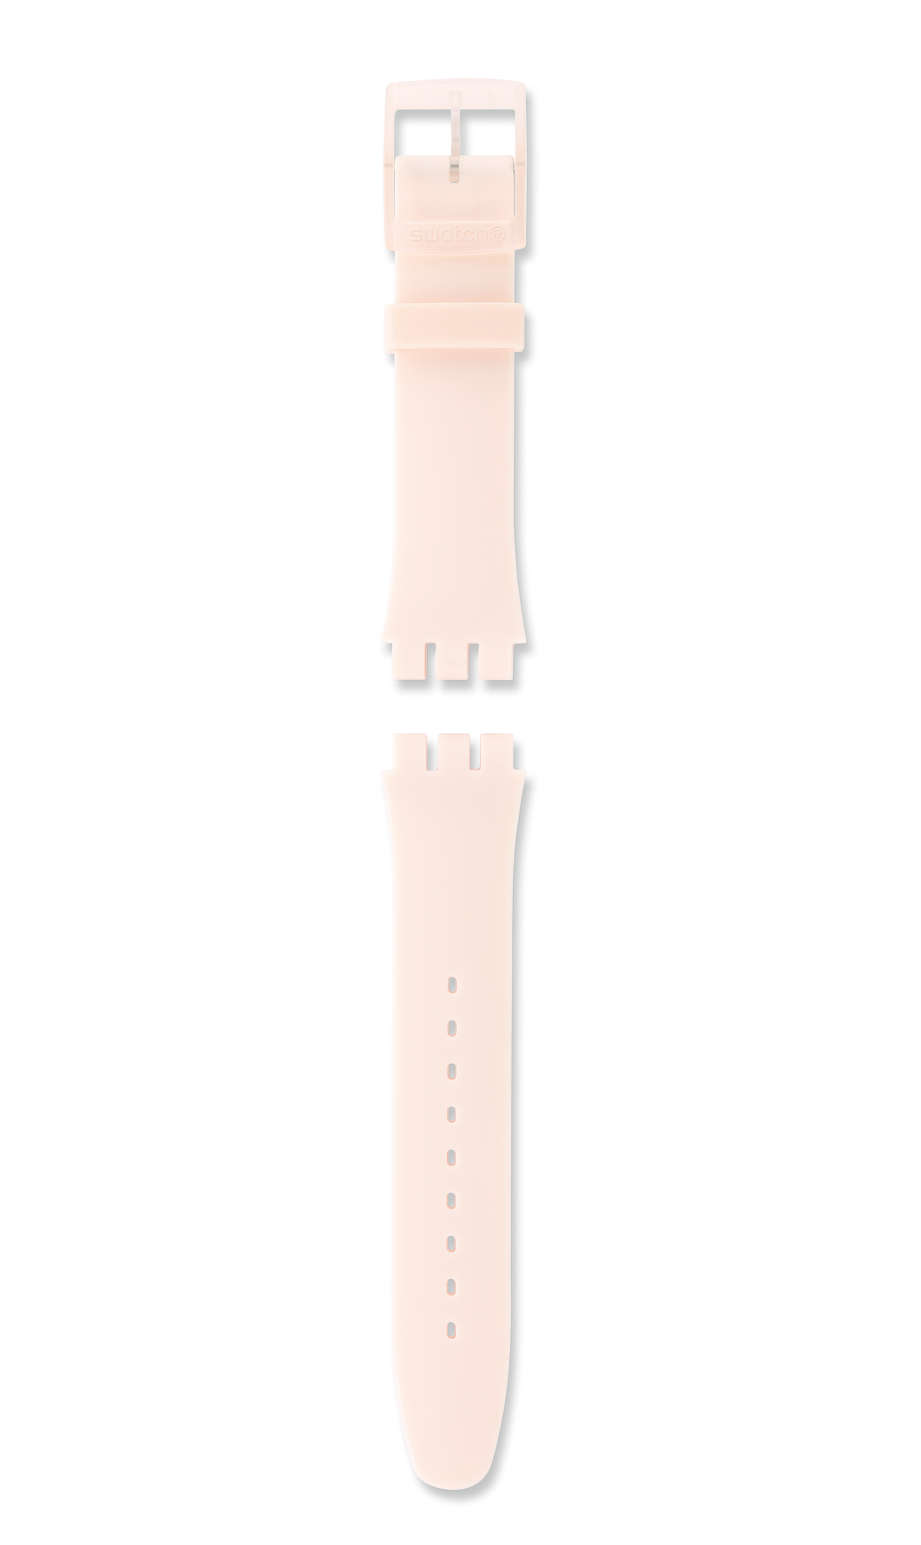 Swatch - ROSE REBEL / SILICONE STRAP - 1